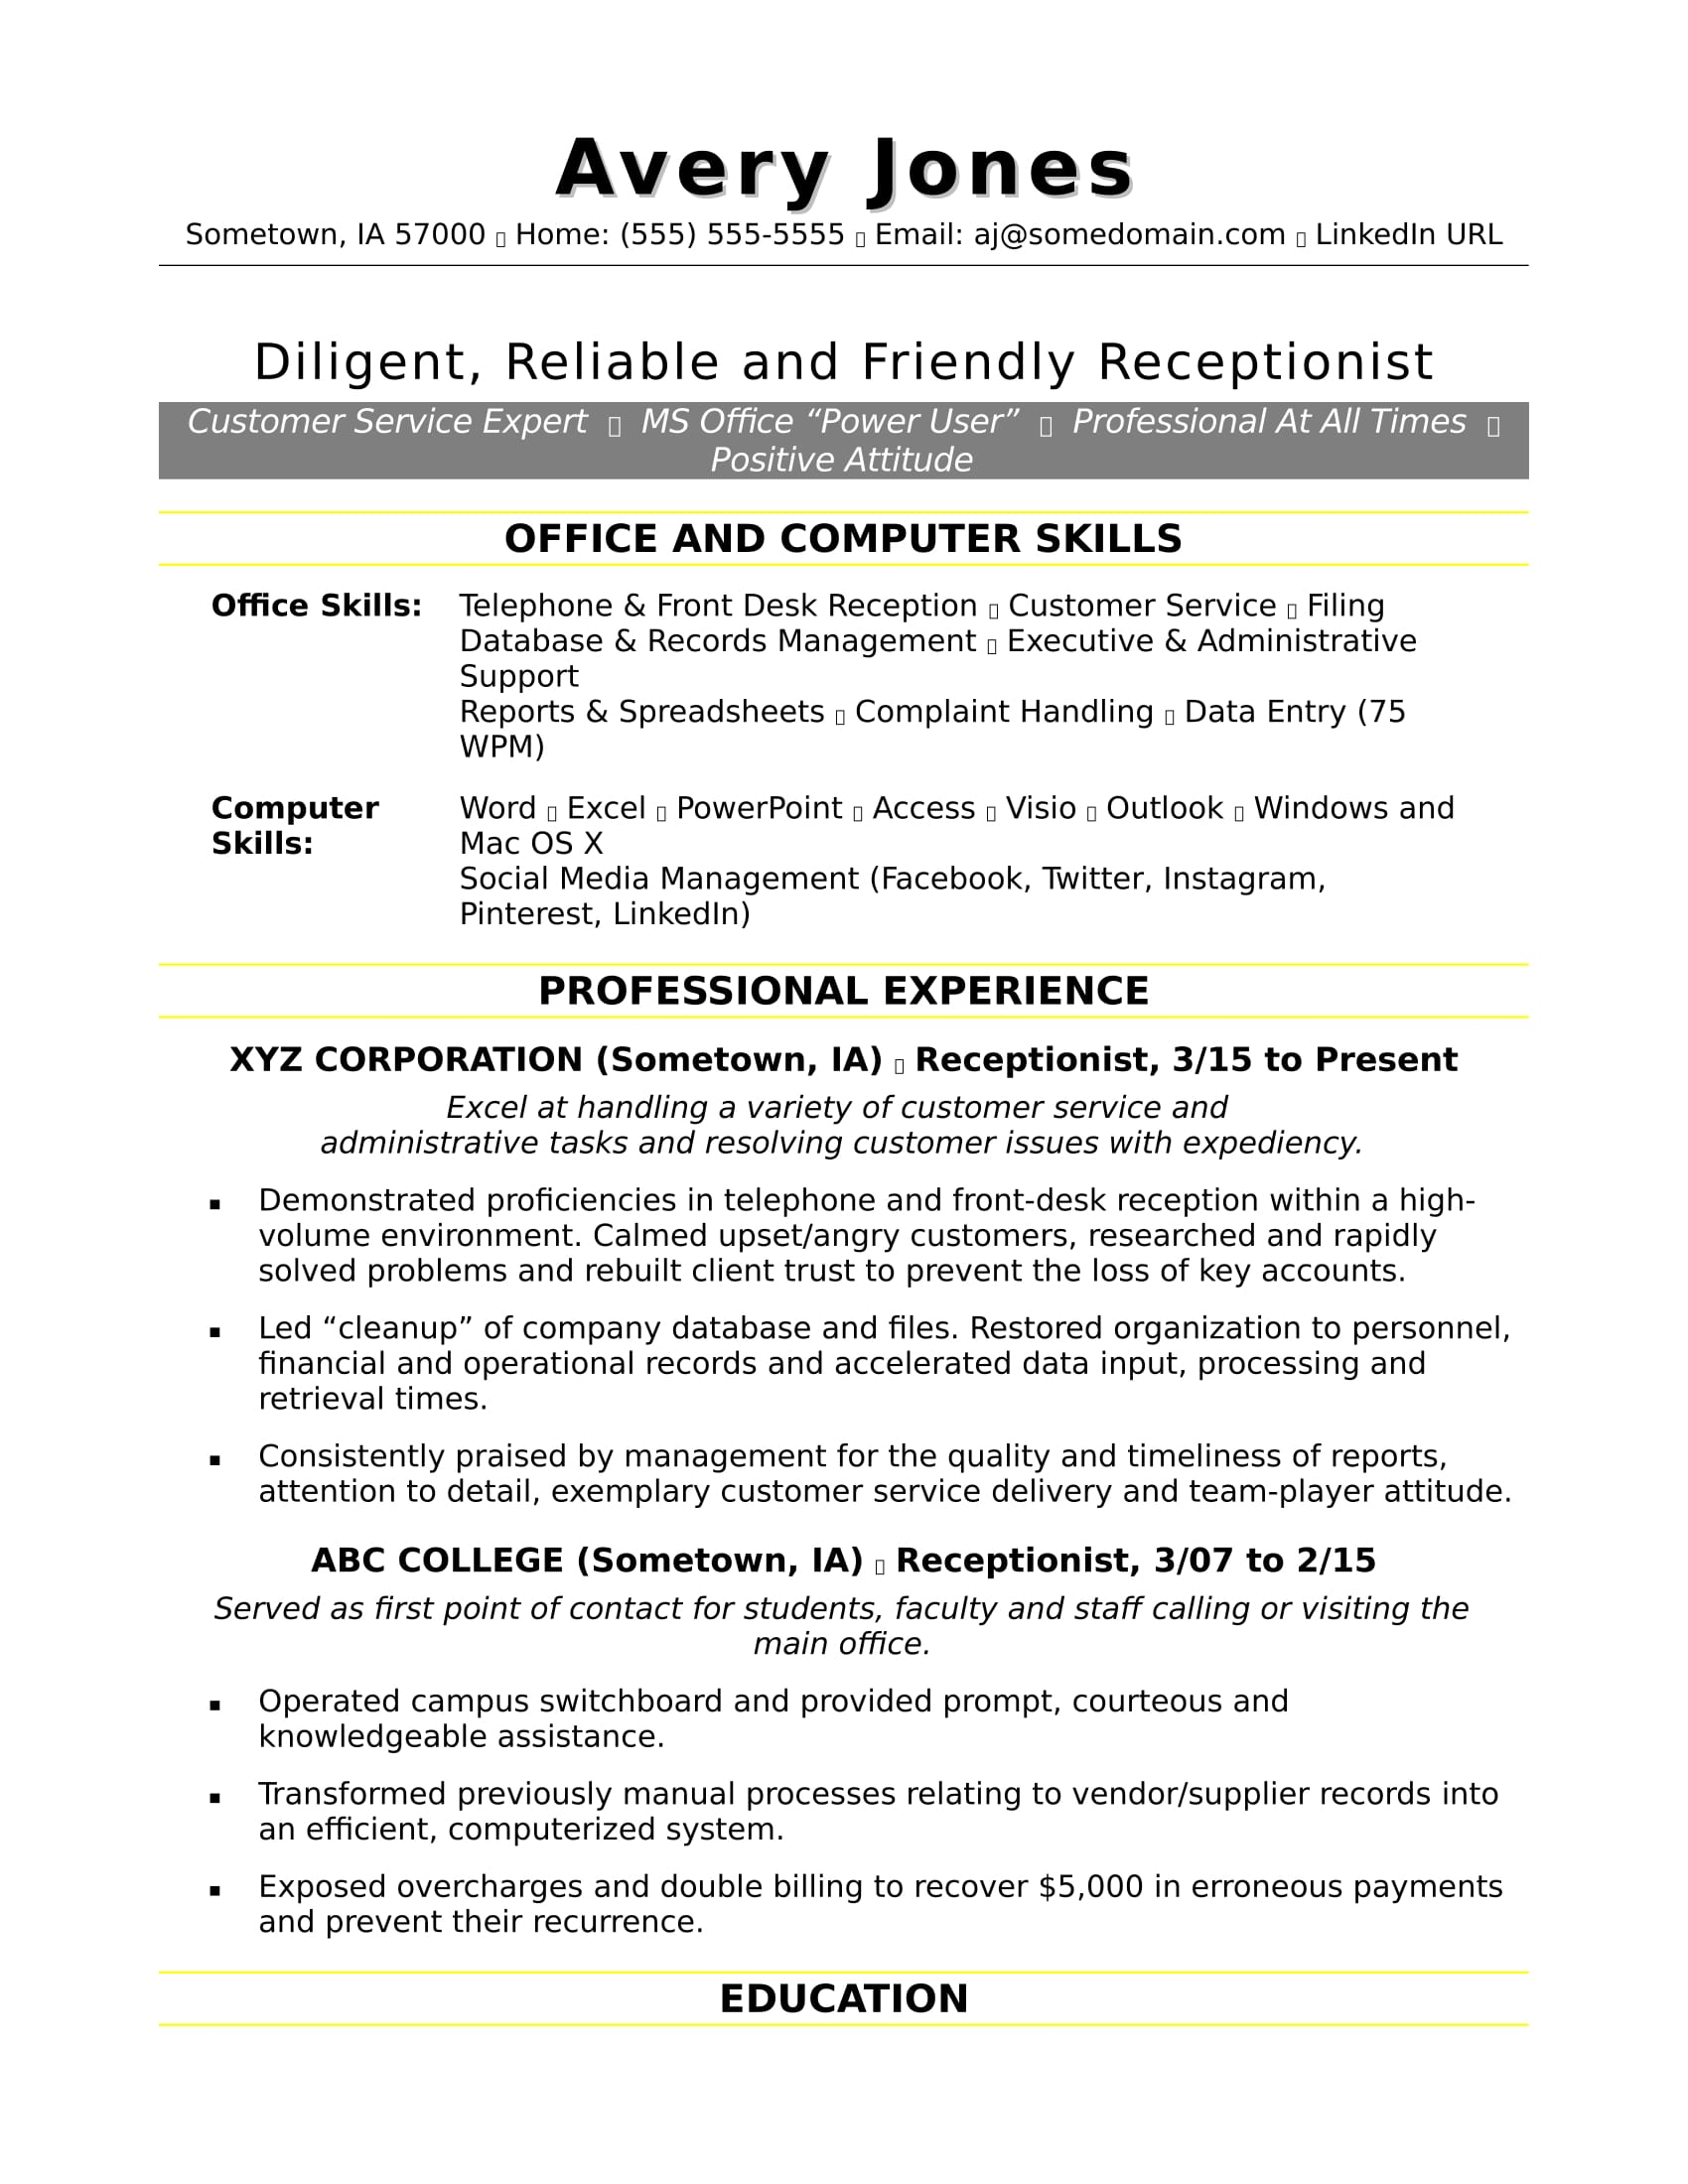 receptionist resume sample monster answering phone calls executive writing samples Resume Answering Phone Calls Resume